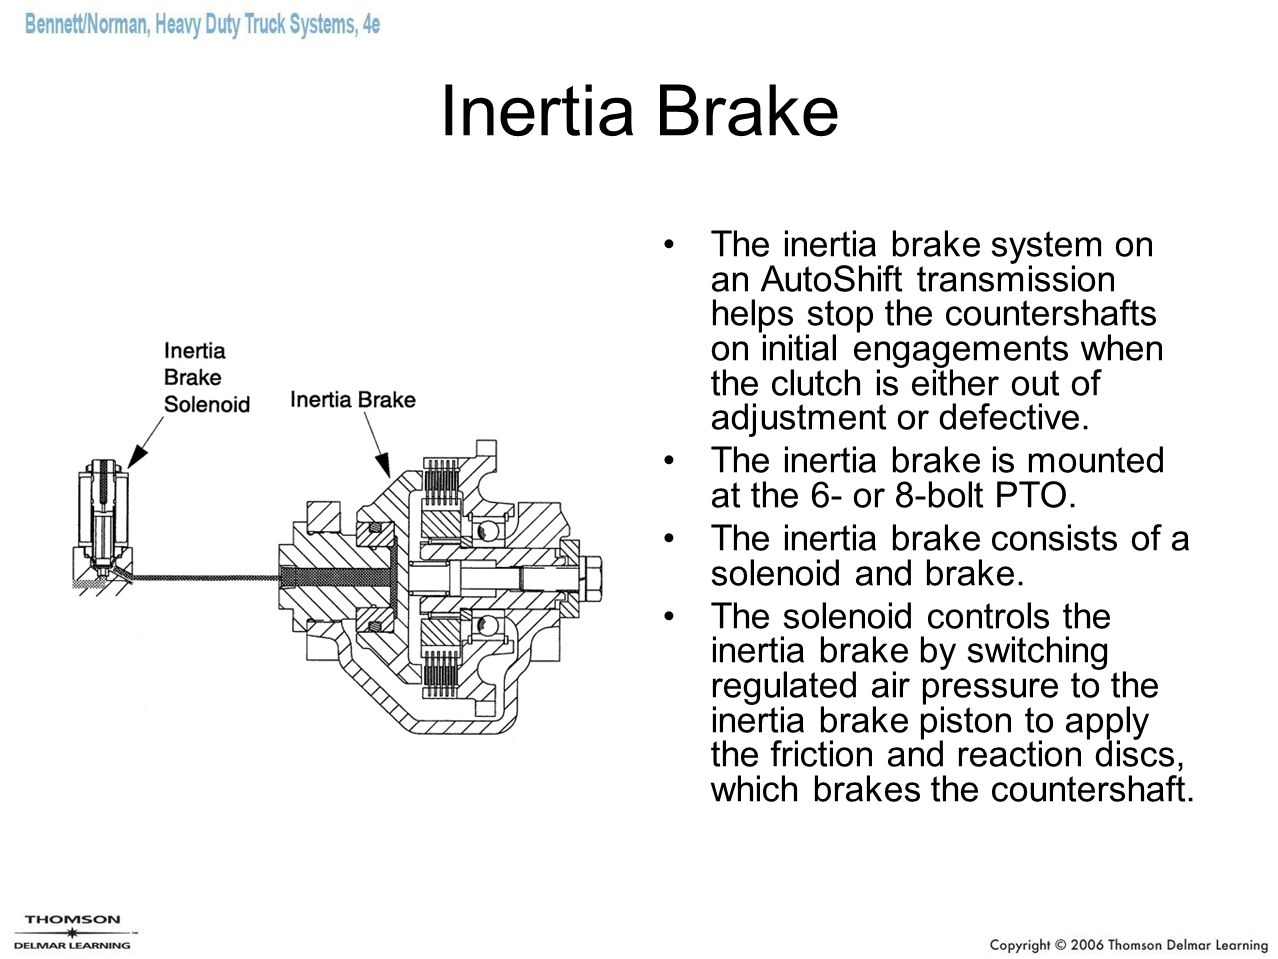 Inertia Brake The inertia brake system on an AutoShift transmission helps stop the countershafts on initial engagements when the clutch is either out